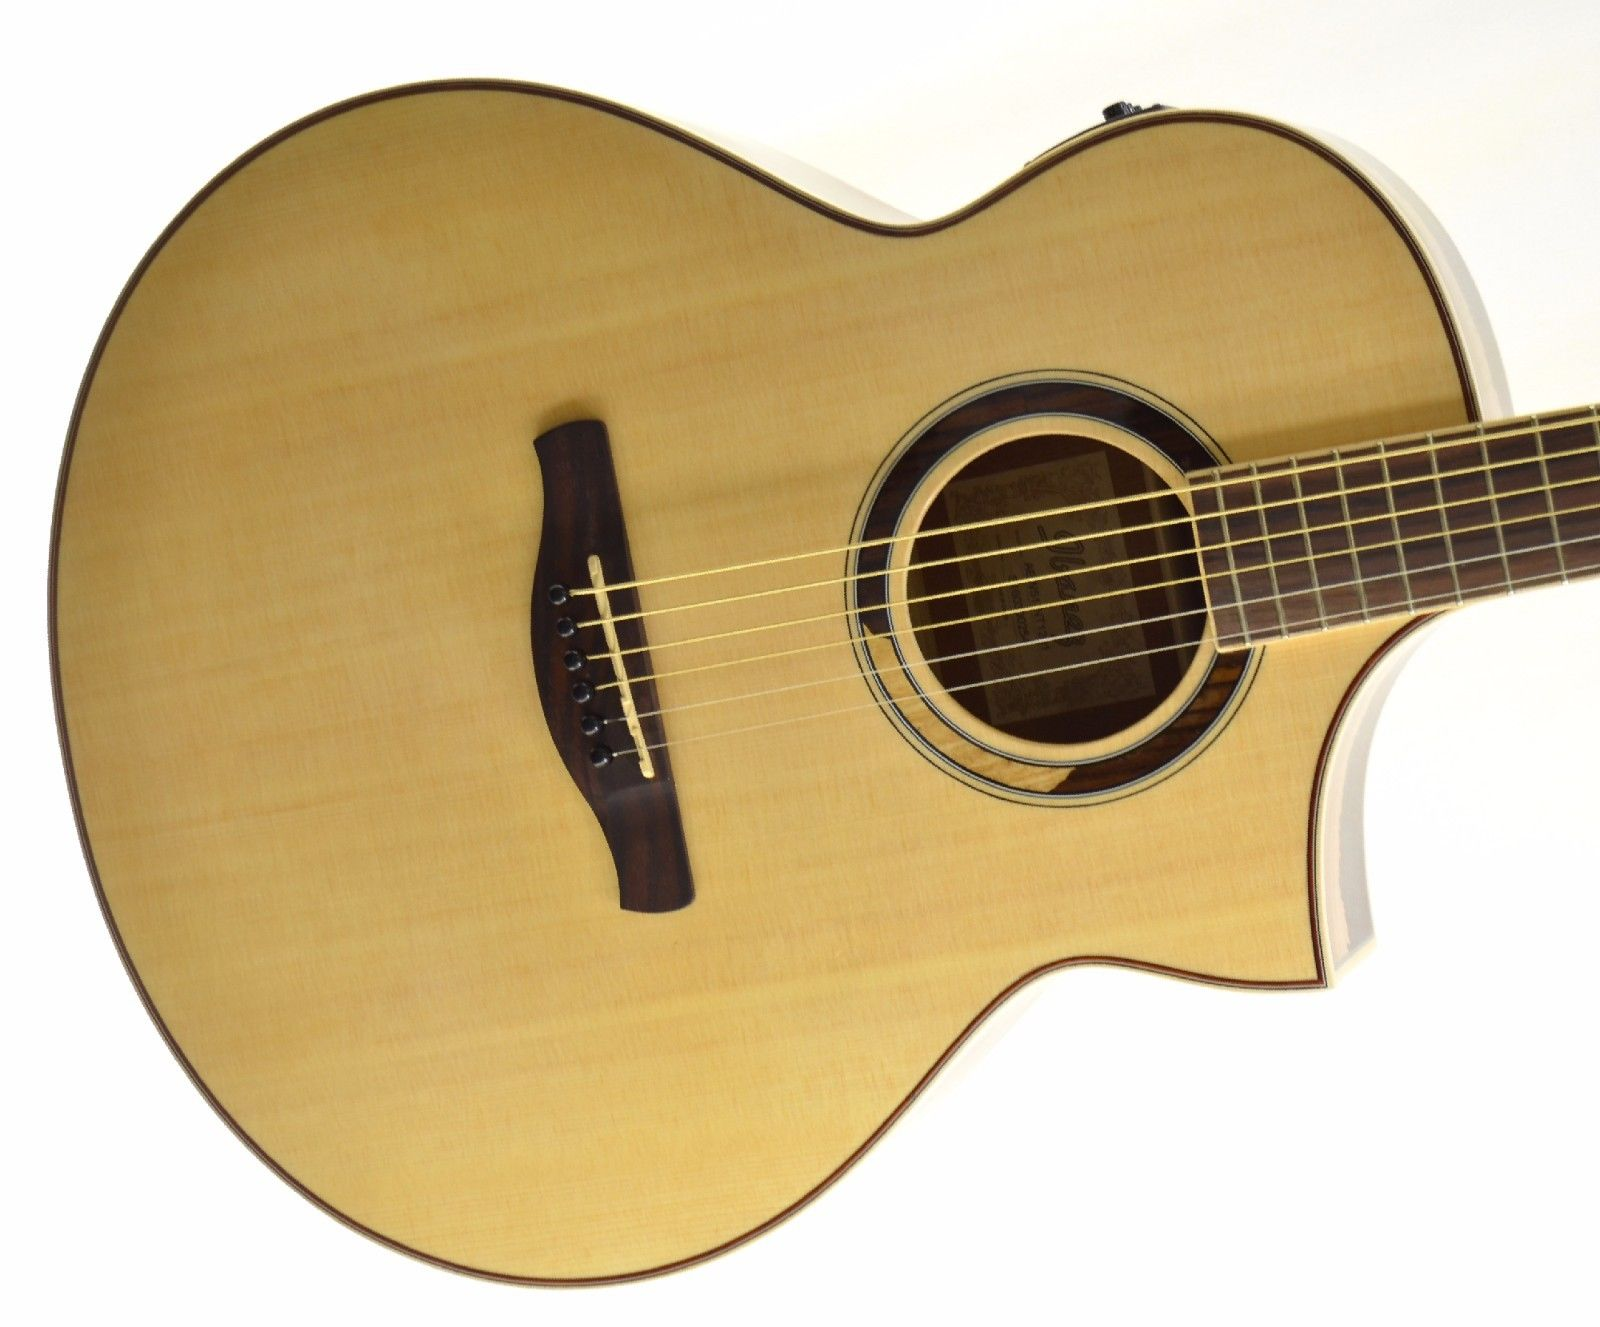 *NEW* Ibanez AEW51 Exotic Tonewood Acoustic Electric Guitar – Natural (C)